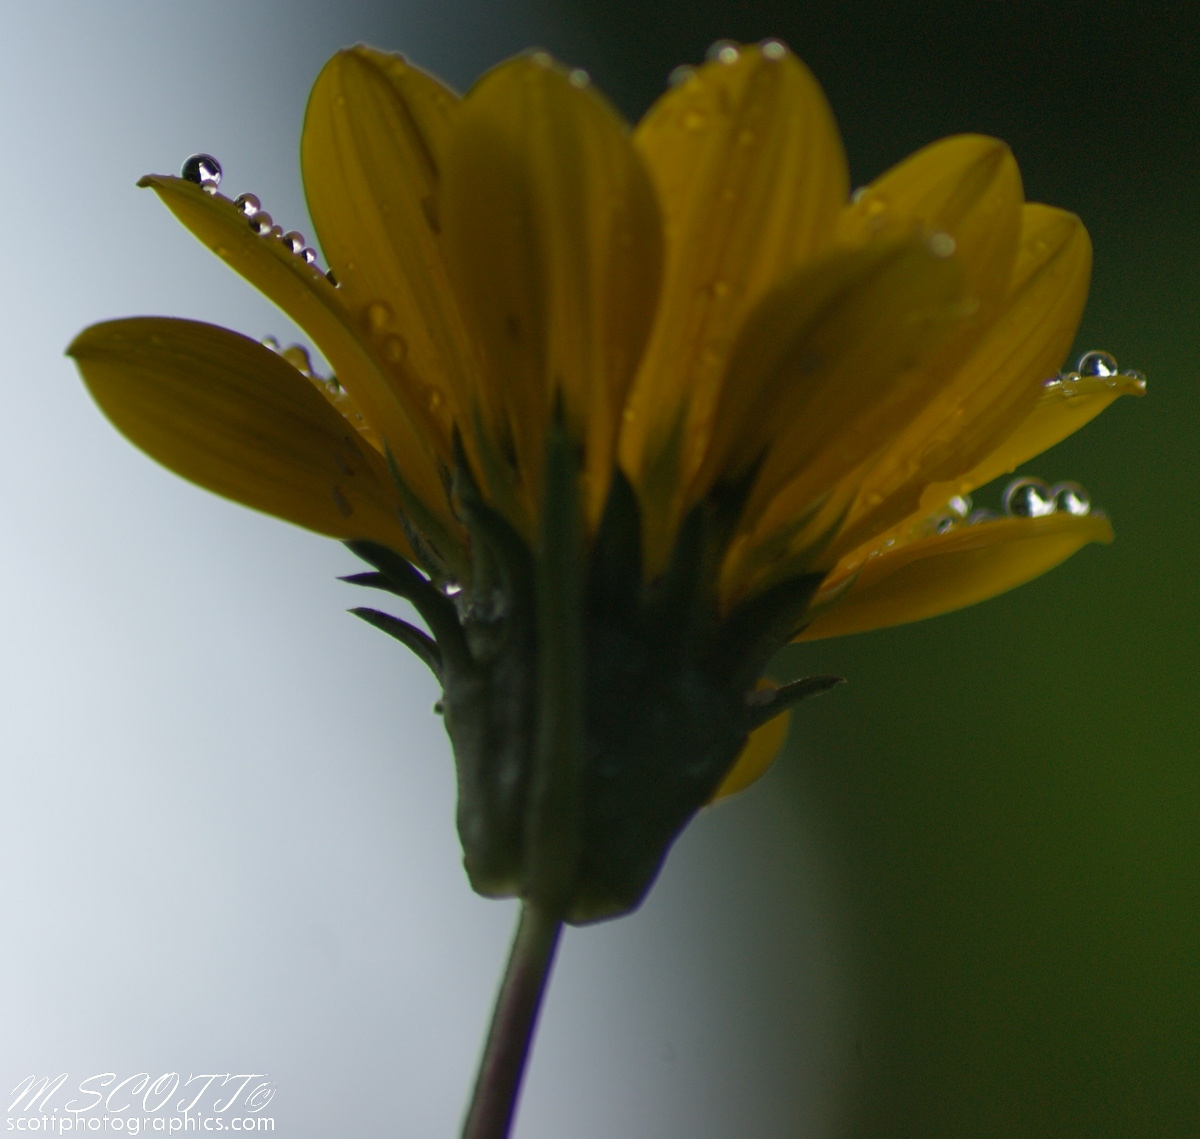 http://www.images.scottphotographics.com/using-water-droplets-to-impove-flower-photos/using-water-droplets-to-improve-flower-photos-4.jpg